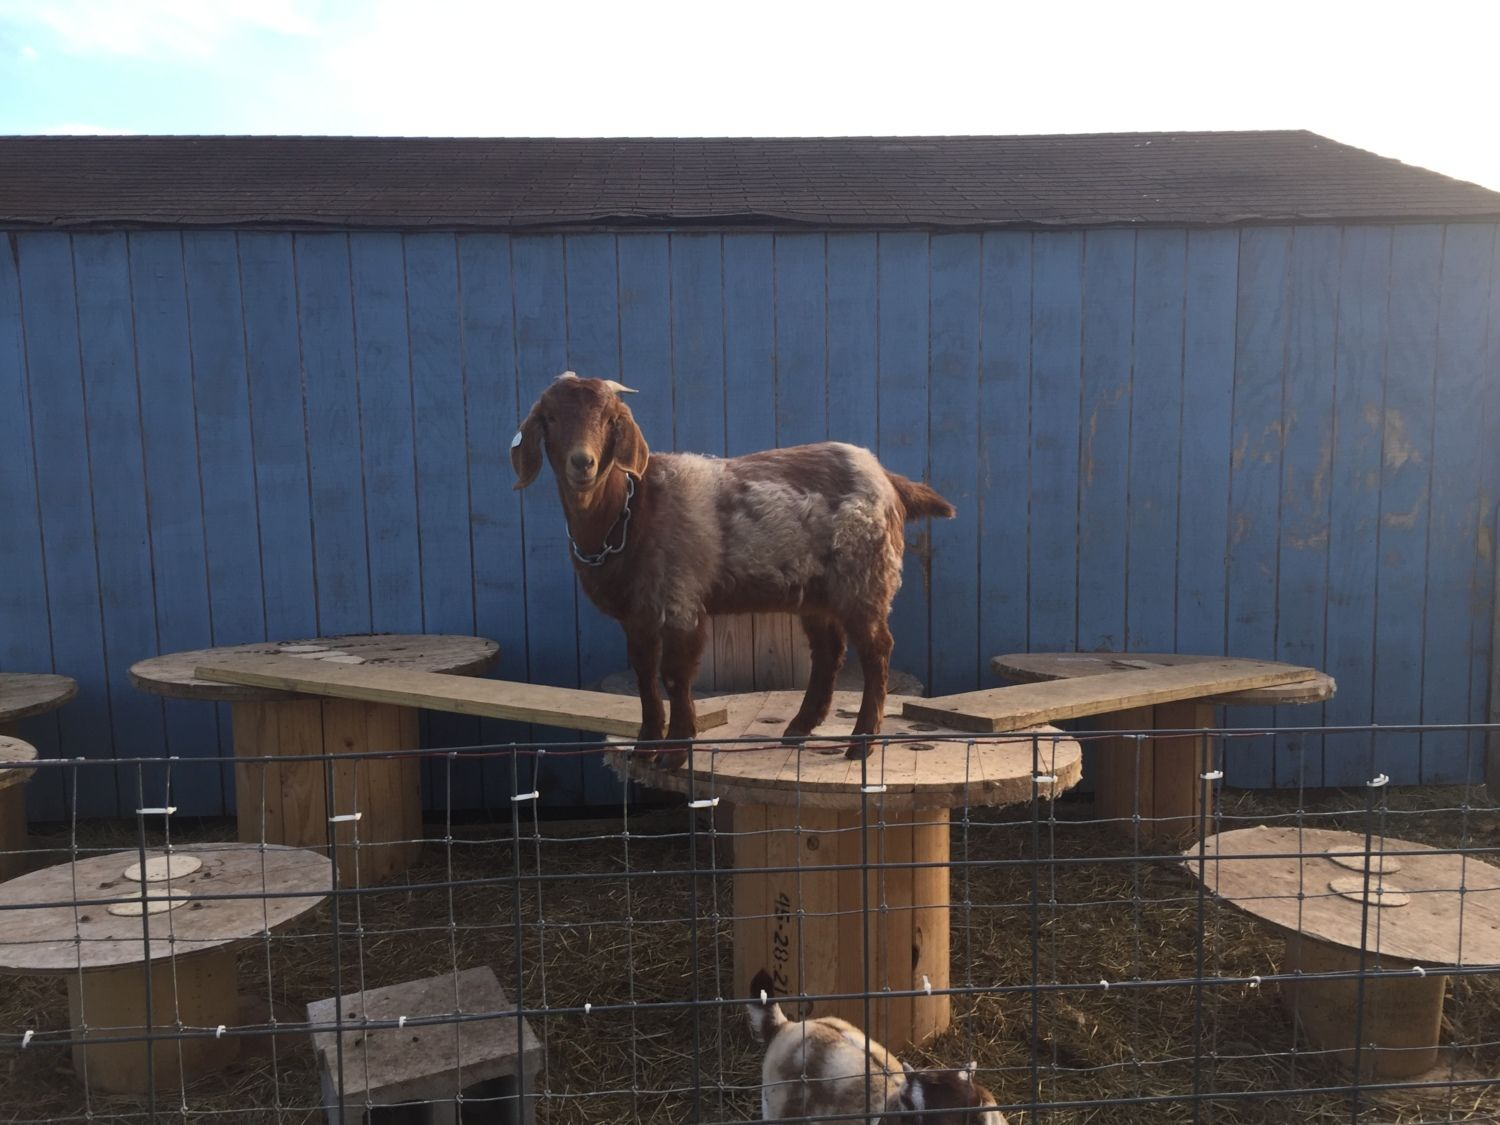 Goat playgrounds